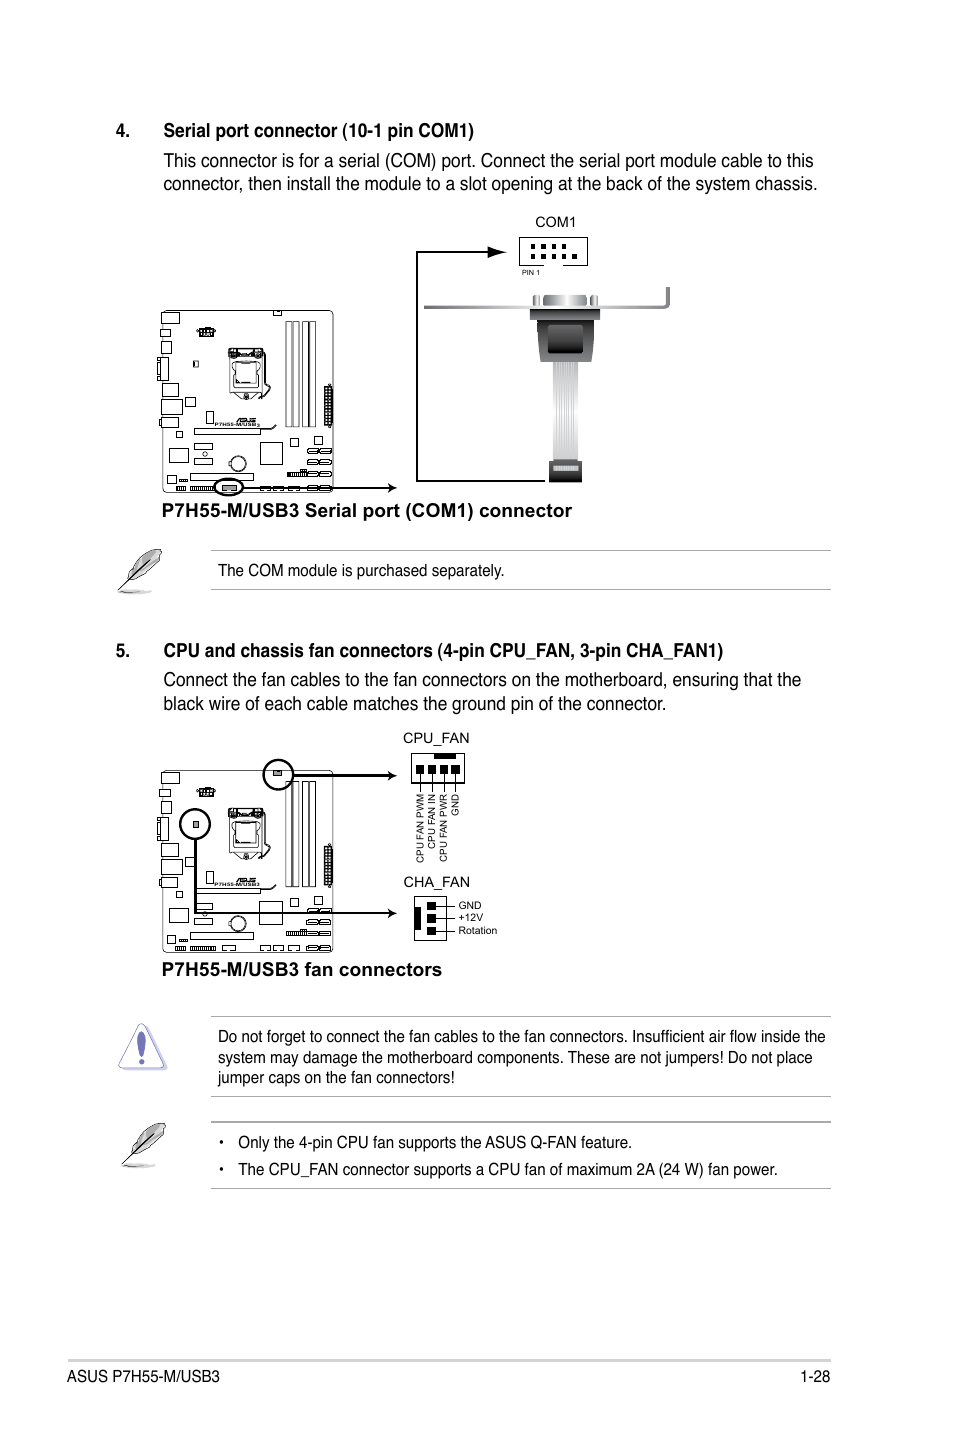 hight resolution of p7h55 m usb3 fan connectors asus p7h55 m usb3 user manual page 41 78